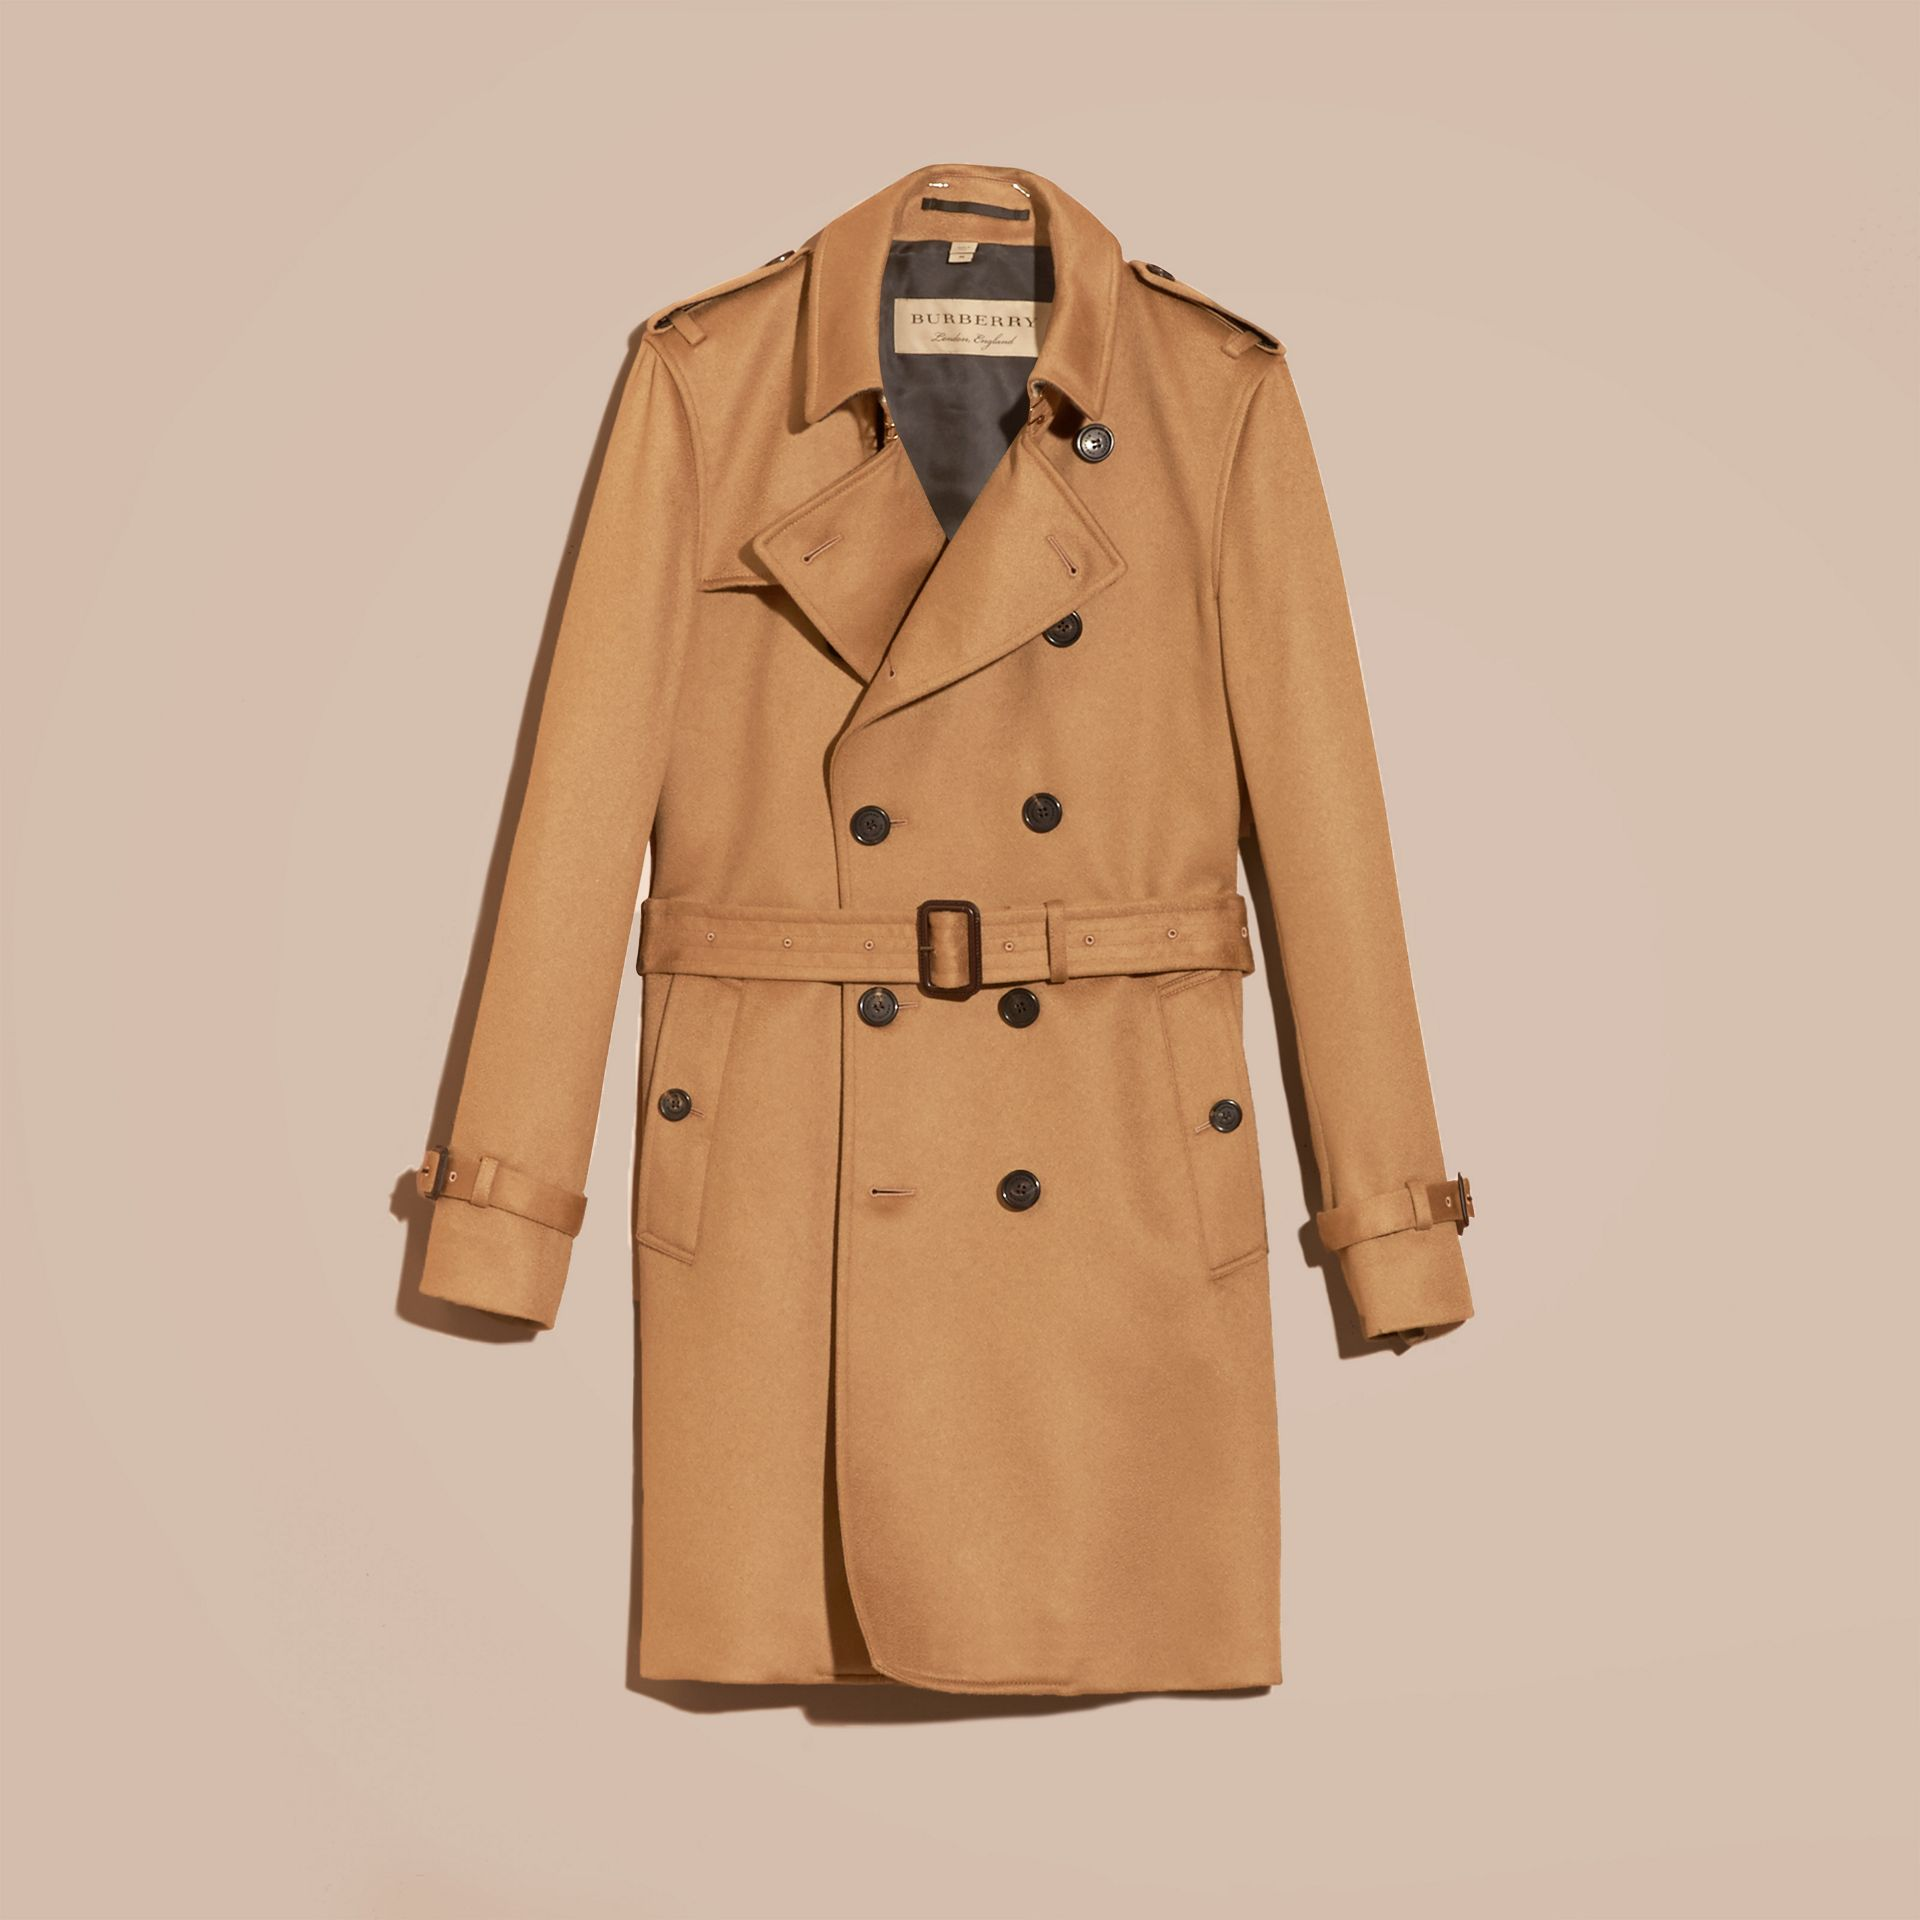 Cashmere Trench Coat in Dark Camel - Men | Burberry Hong Kong - gallery image 4